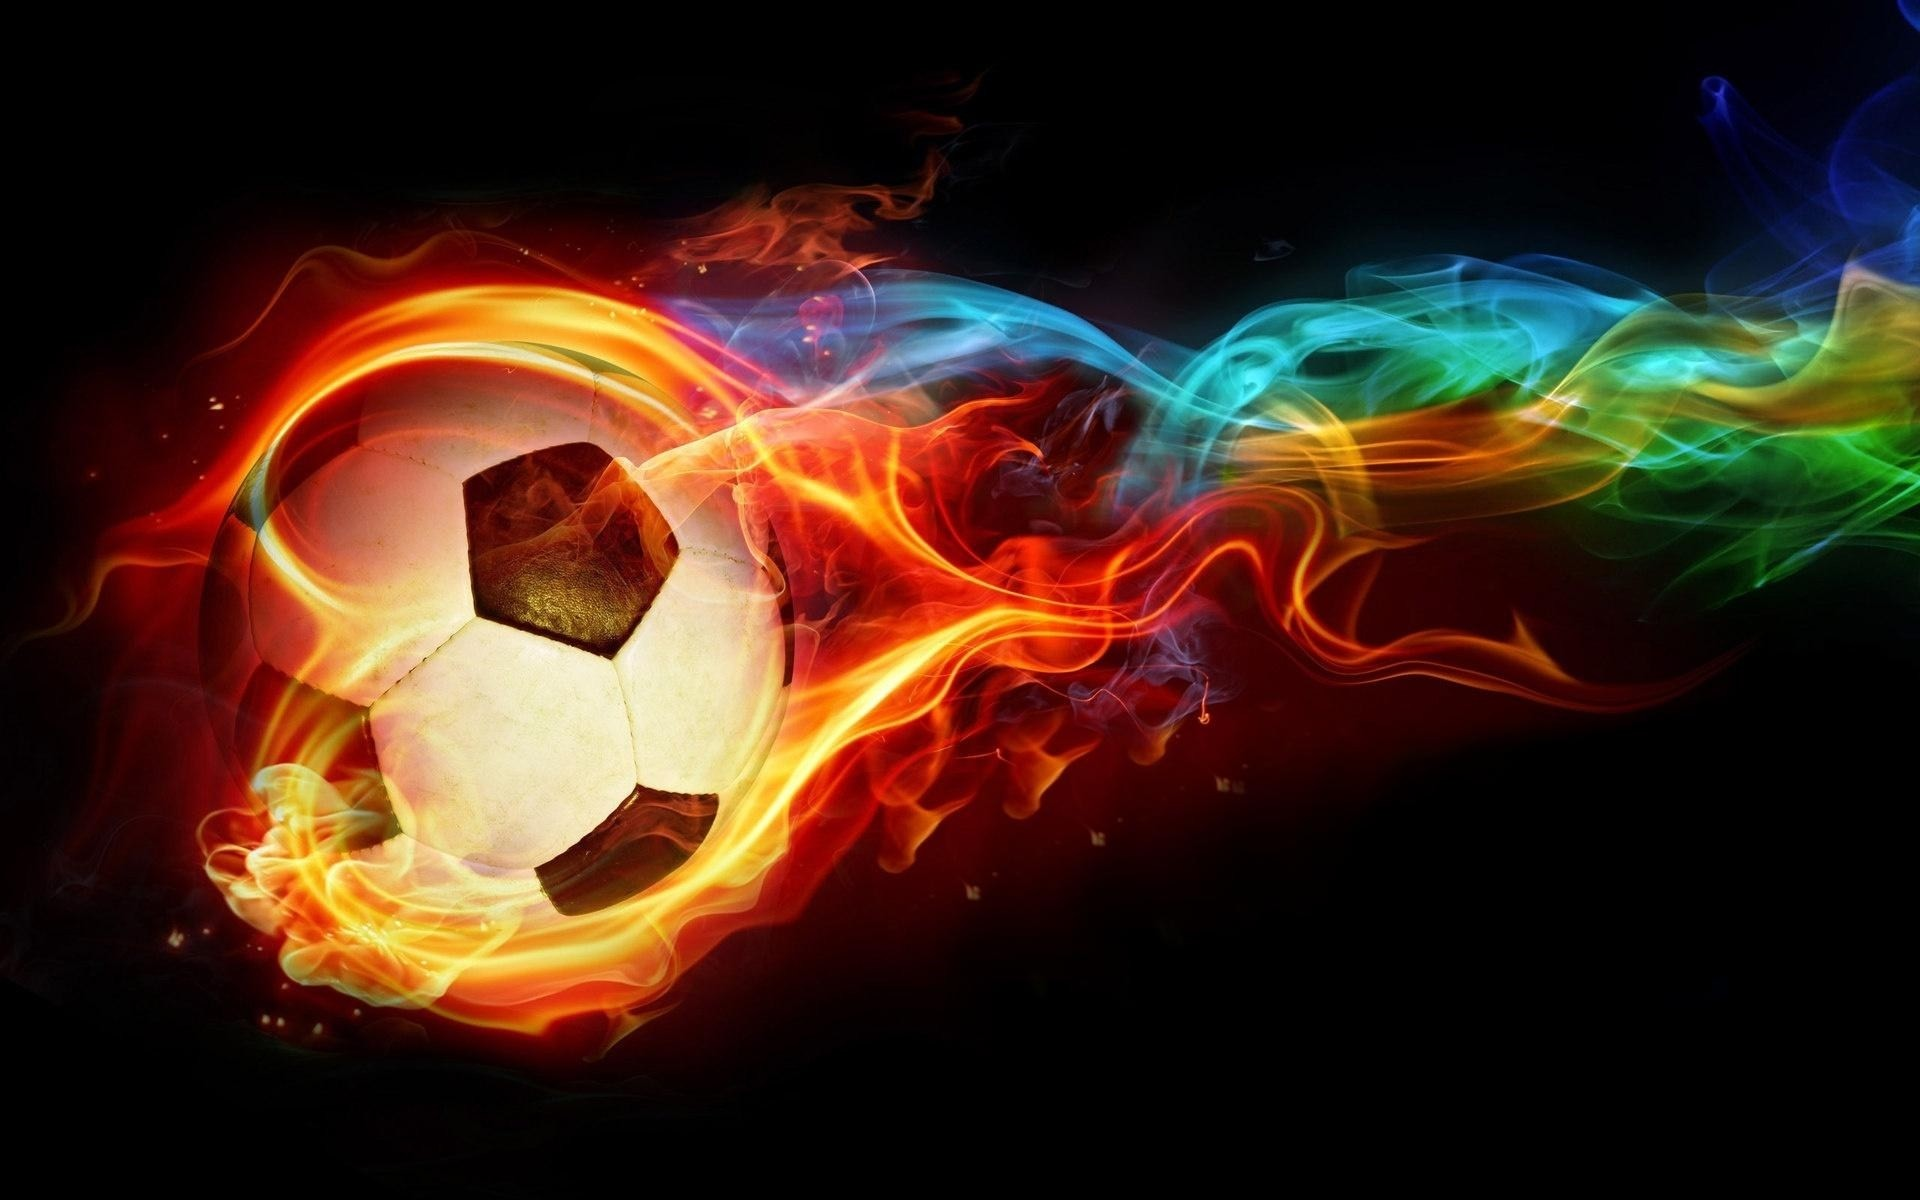 1920x1200 Soccer Wallpaper 5664 Px Hdwallsource   Cool Soccer 1920x1200